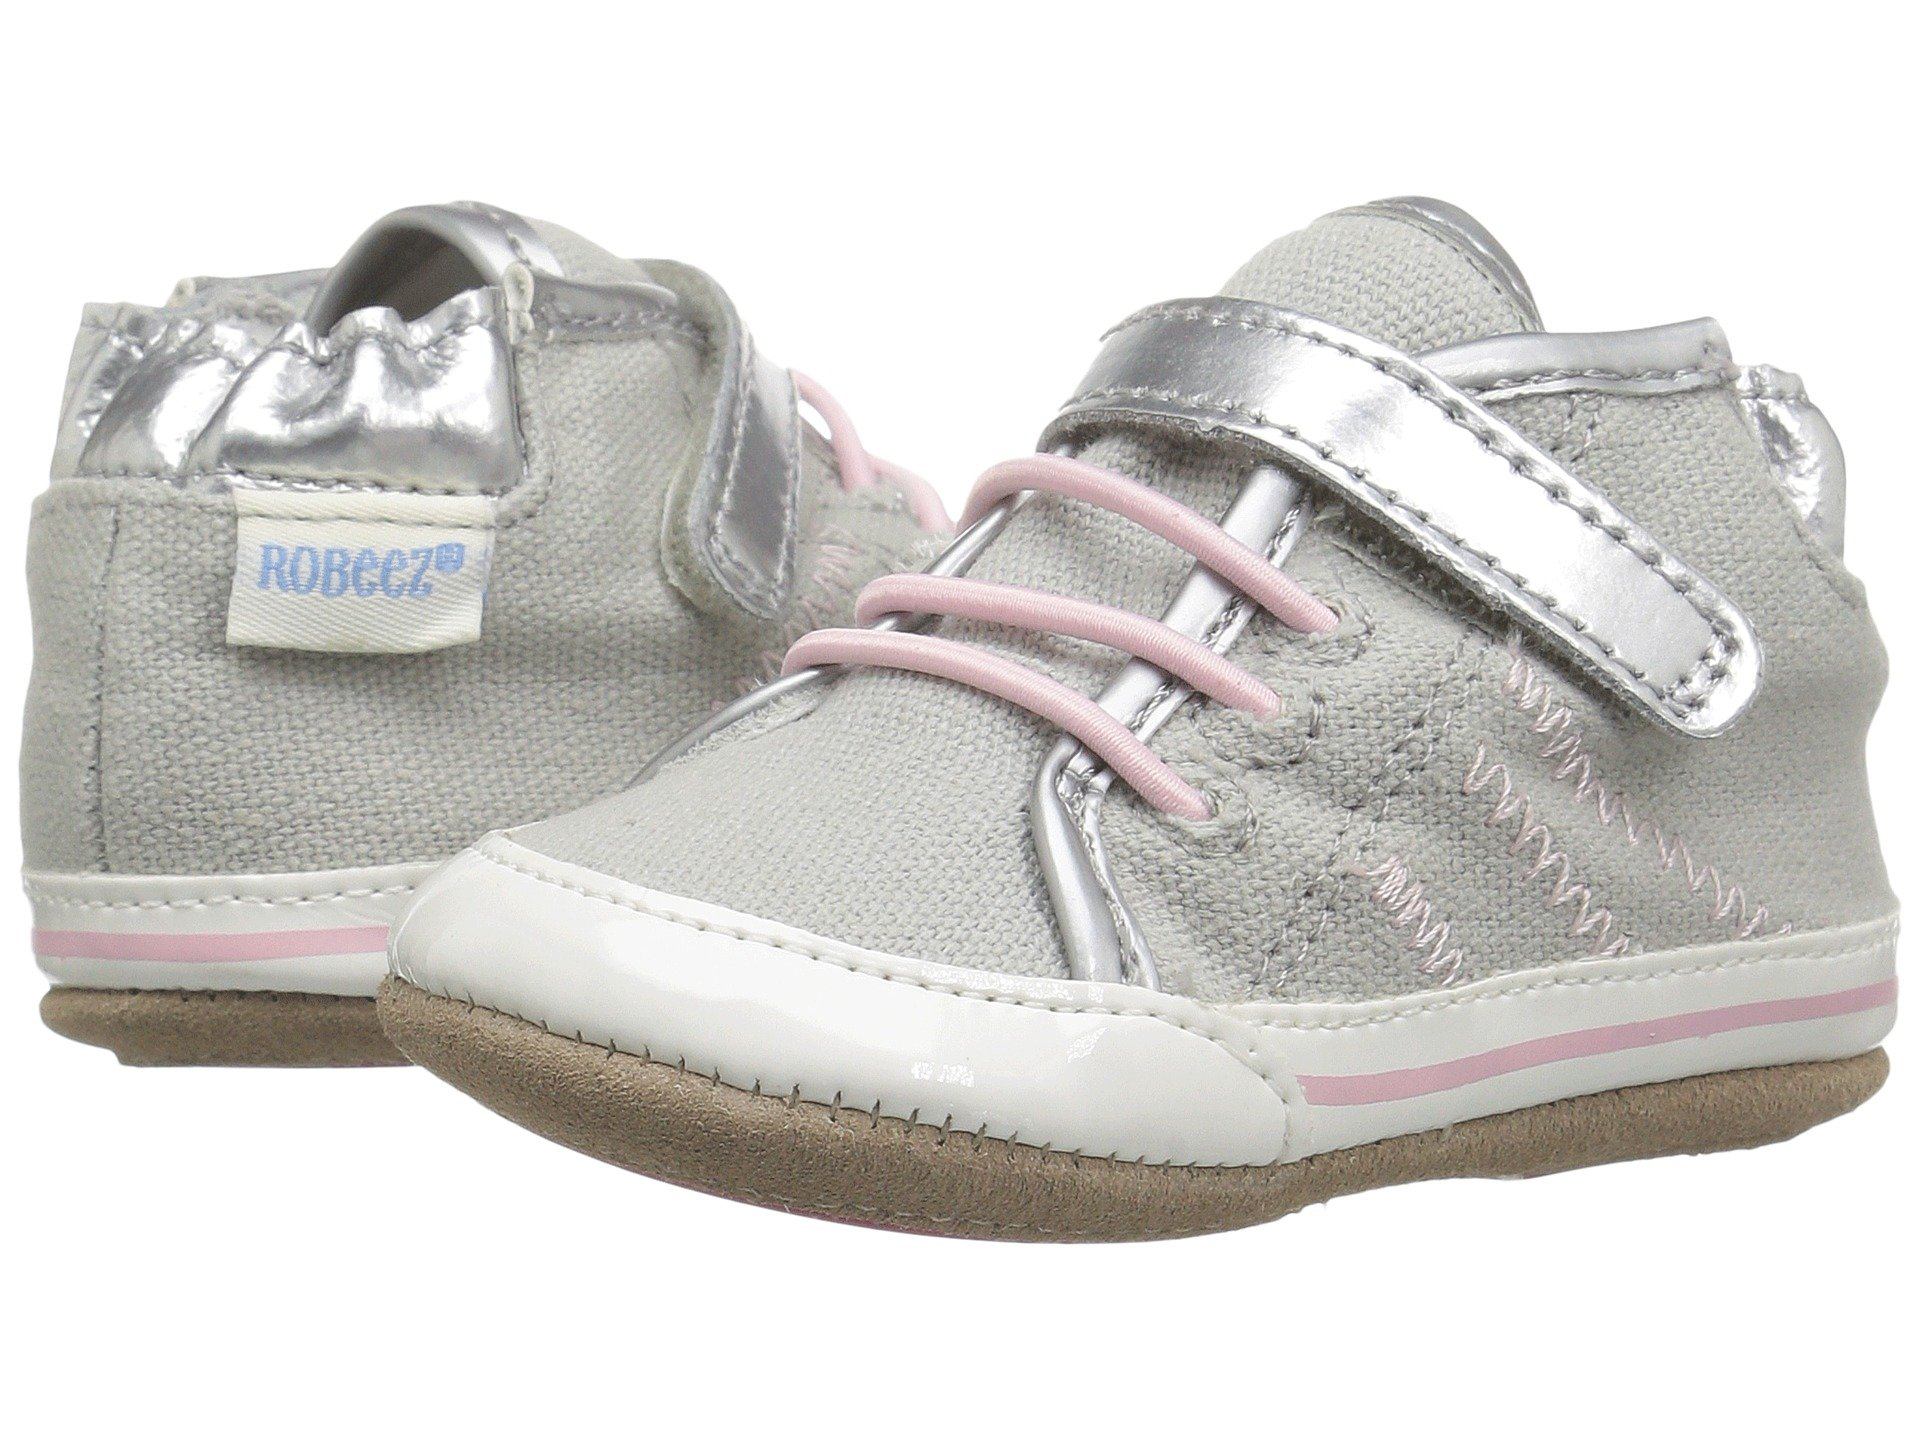 Robeez Hadley High Top Mini Shoez Infant Toddler At 6pm